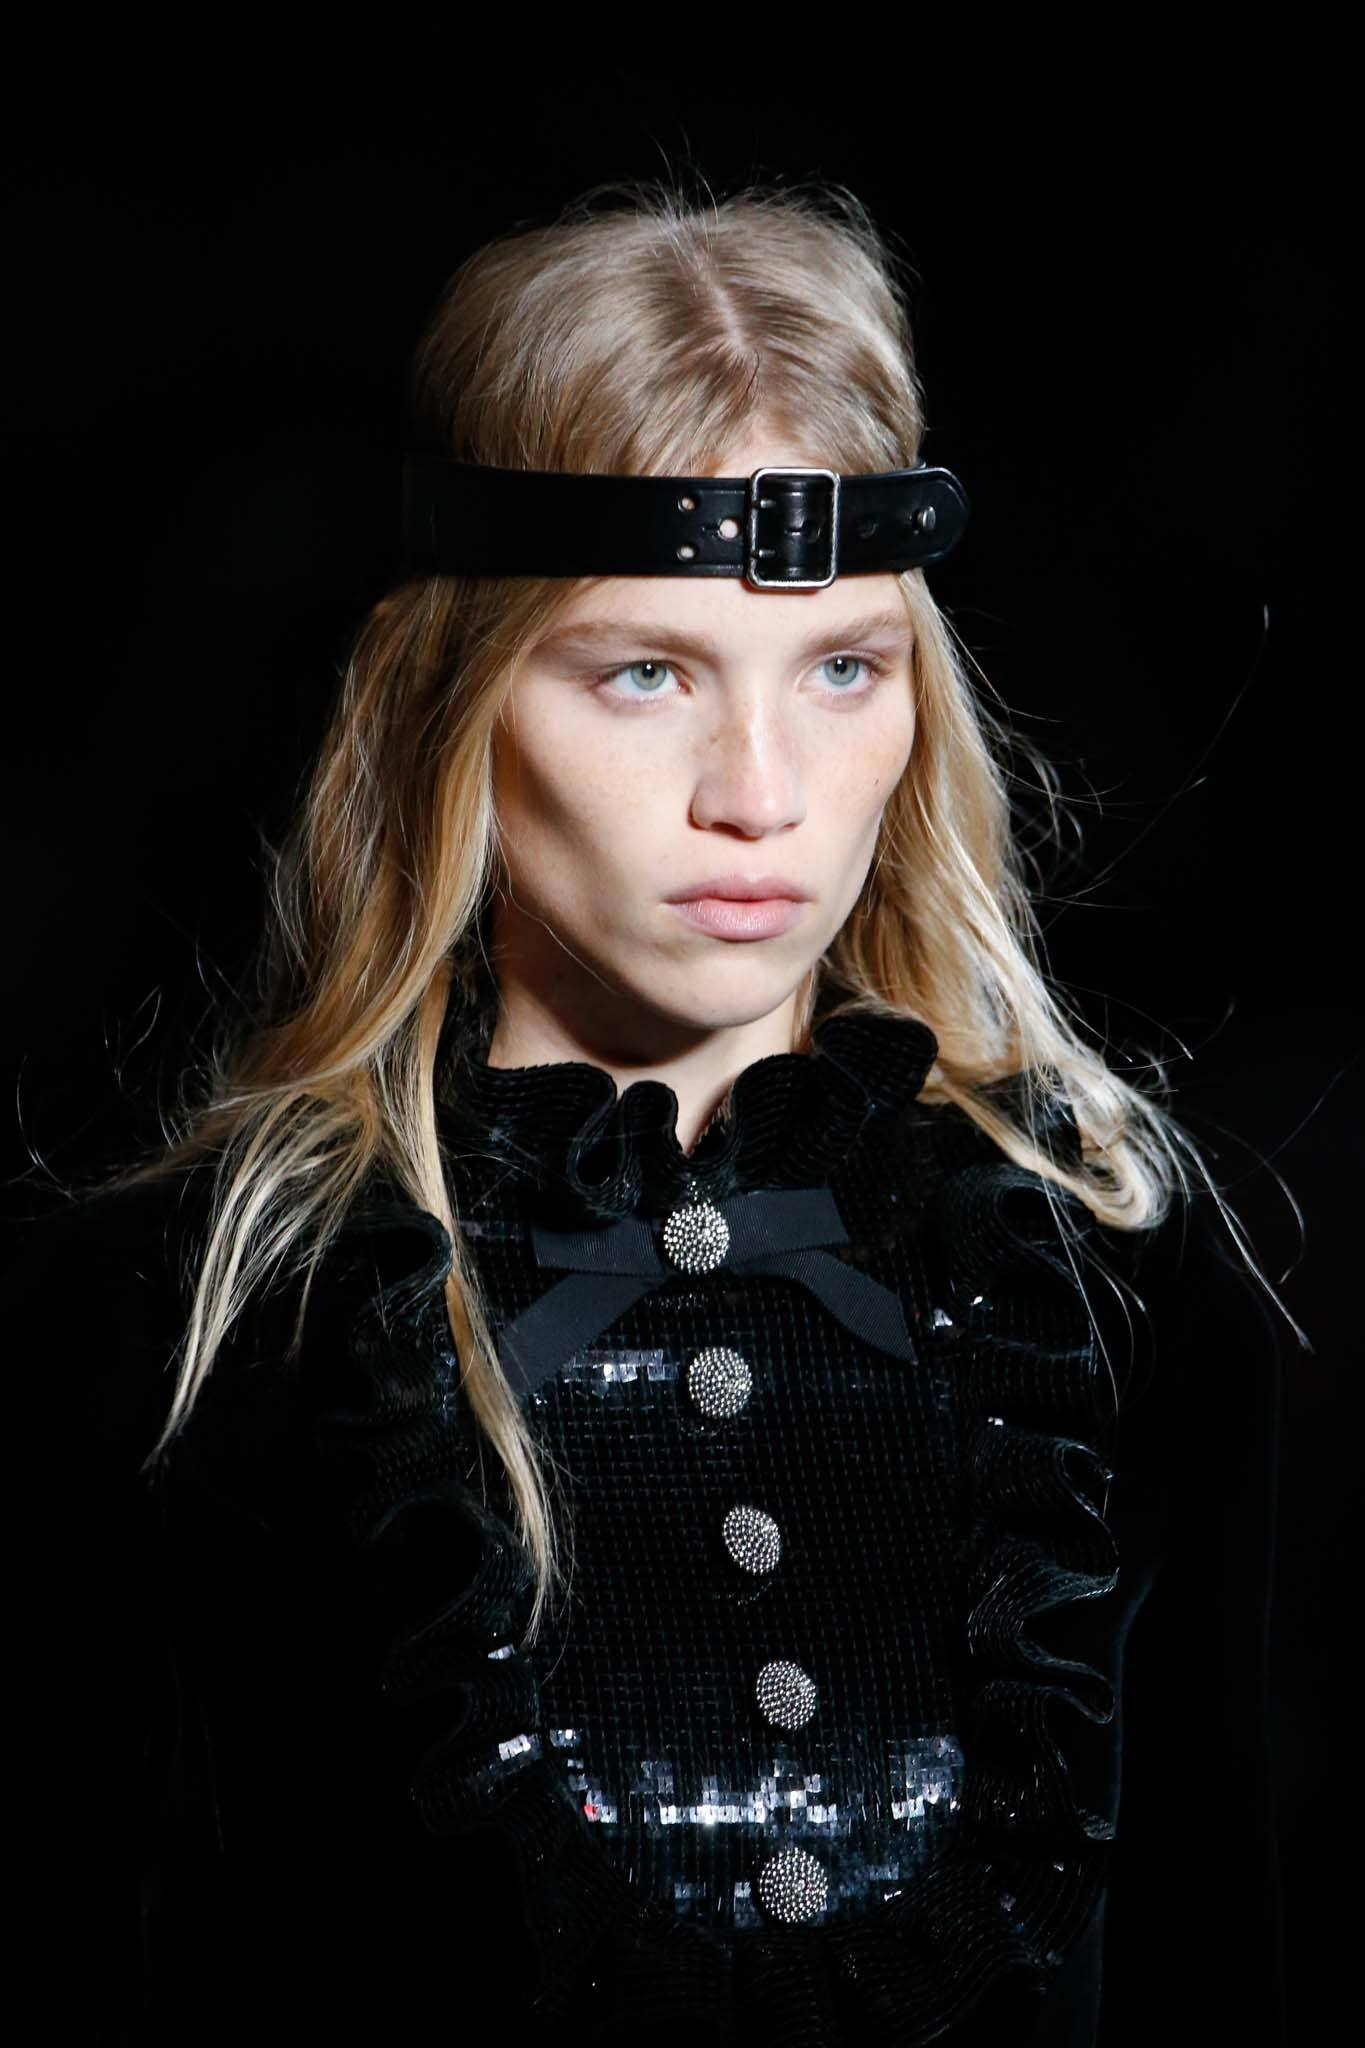 Headband and bandana hairstyles: Model with blonde straight long hair wearing a belted headband and all black outfit.